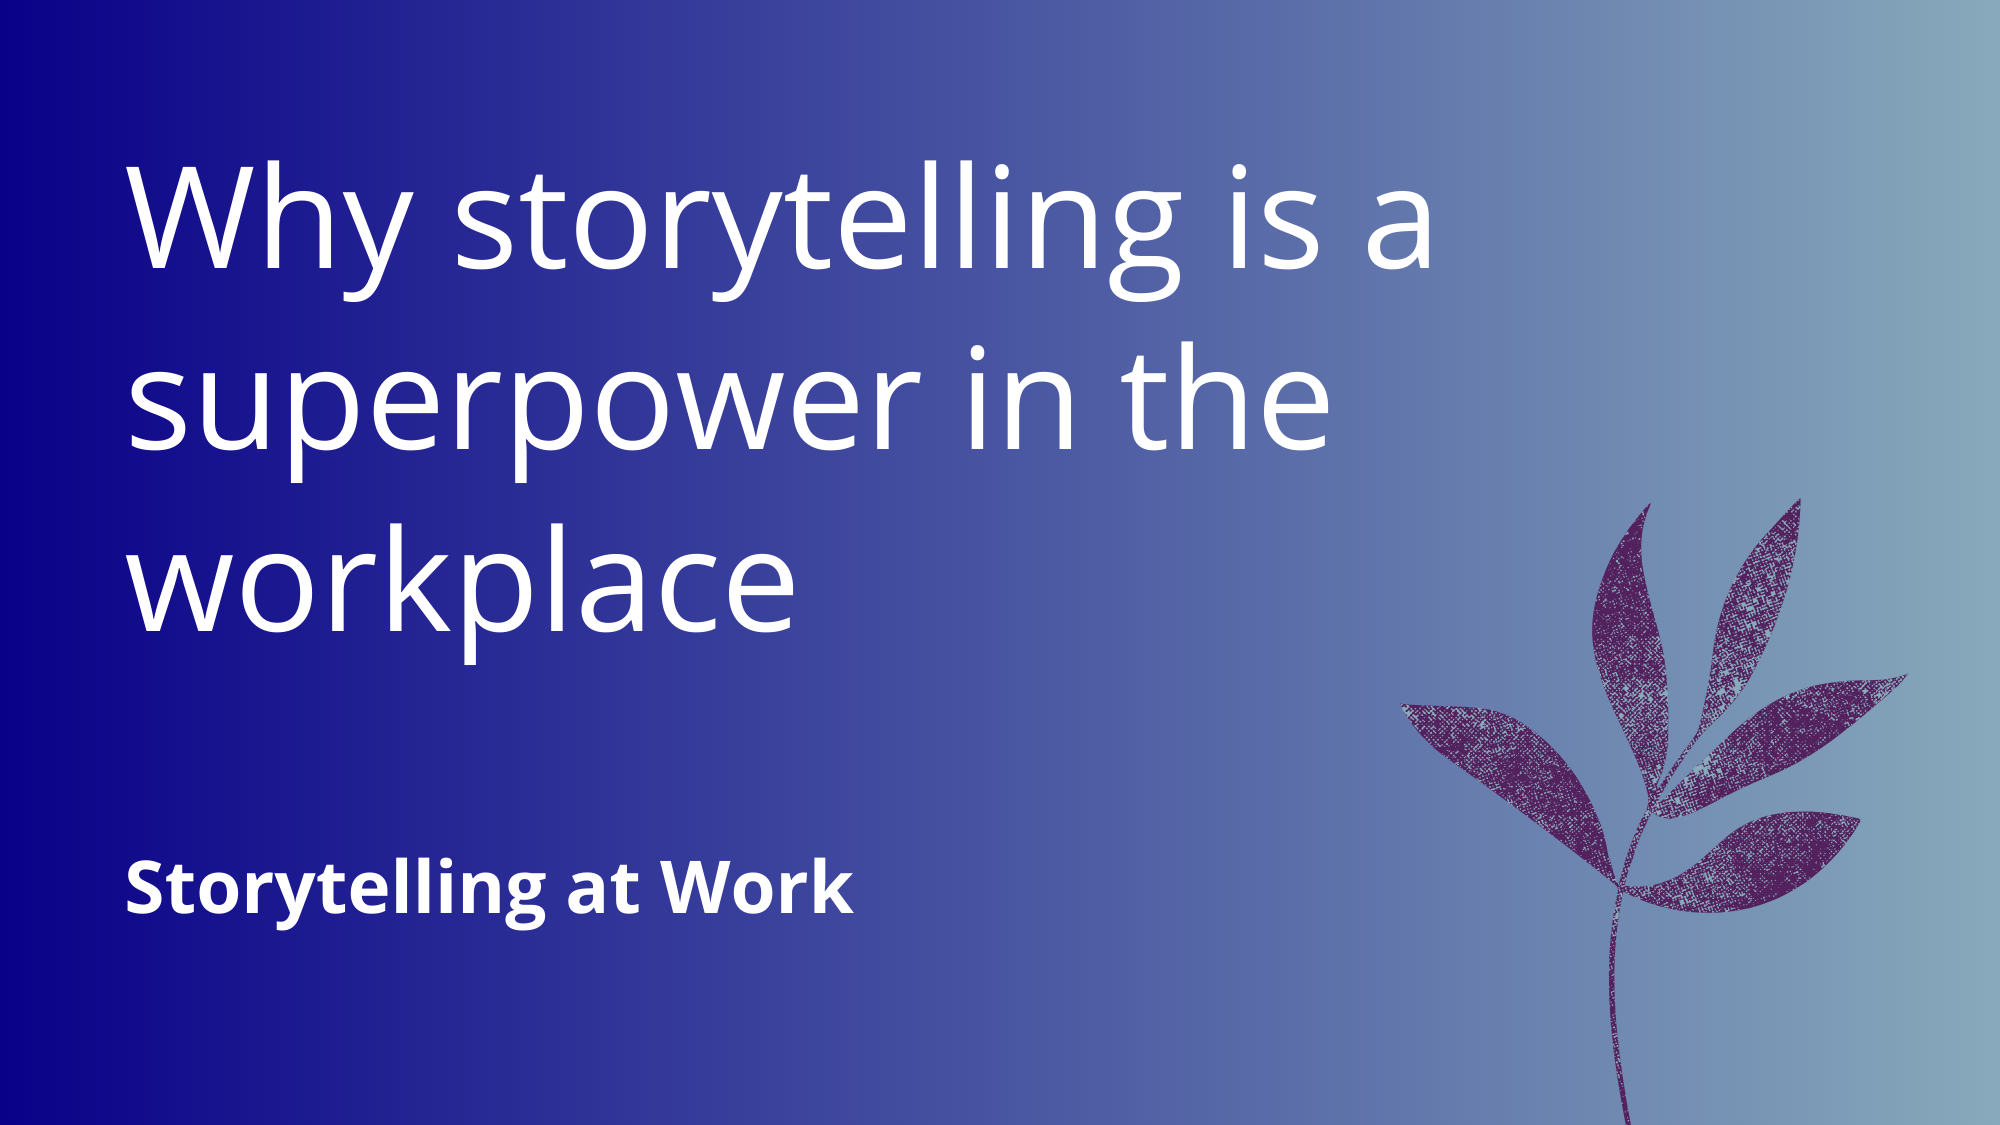 Why storytelling is a superpower in the workplace